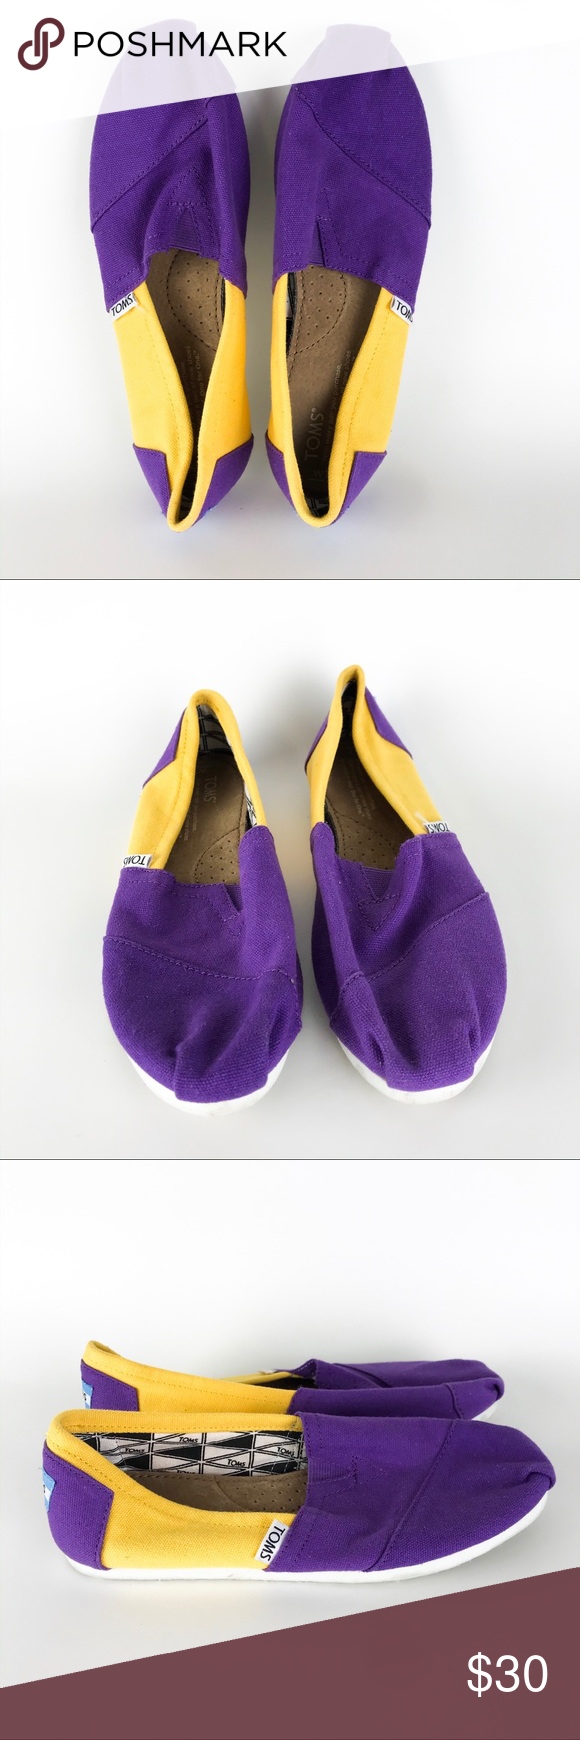 TOMS East Carolina Yellow Purple Canvas Flats Laid-back and full of school spirit, this is the collegiate version of the classic slip-on that started it all. Styled like the traditional Argentinian alpargata, this slip-on pair features the signature TOMS toe-stitch, elastic V goring for easy on and off, and a comfortable, cushioned suede footbed. Doubles as Lakers game day canvas.   Size 7 W    Condition  Excellent condition preowned with no flaws noted. Toms Shoes Flats & Loafers #shoegame